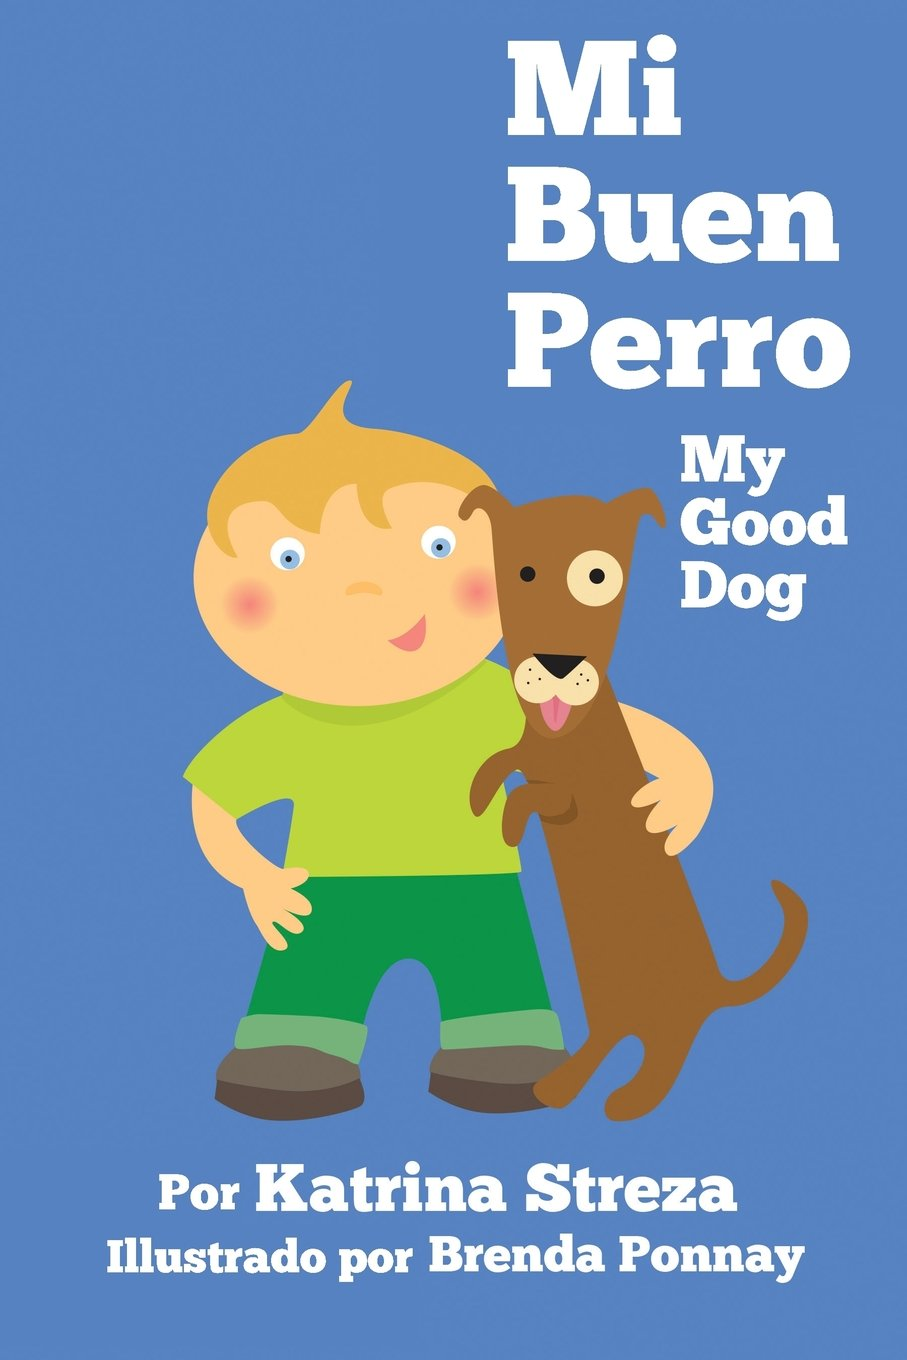 Mi Buen Perro/ My Good Dog (Bilingual Spanish English Edition) Paperback – February 17, 2015